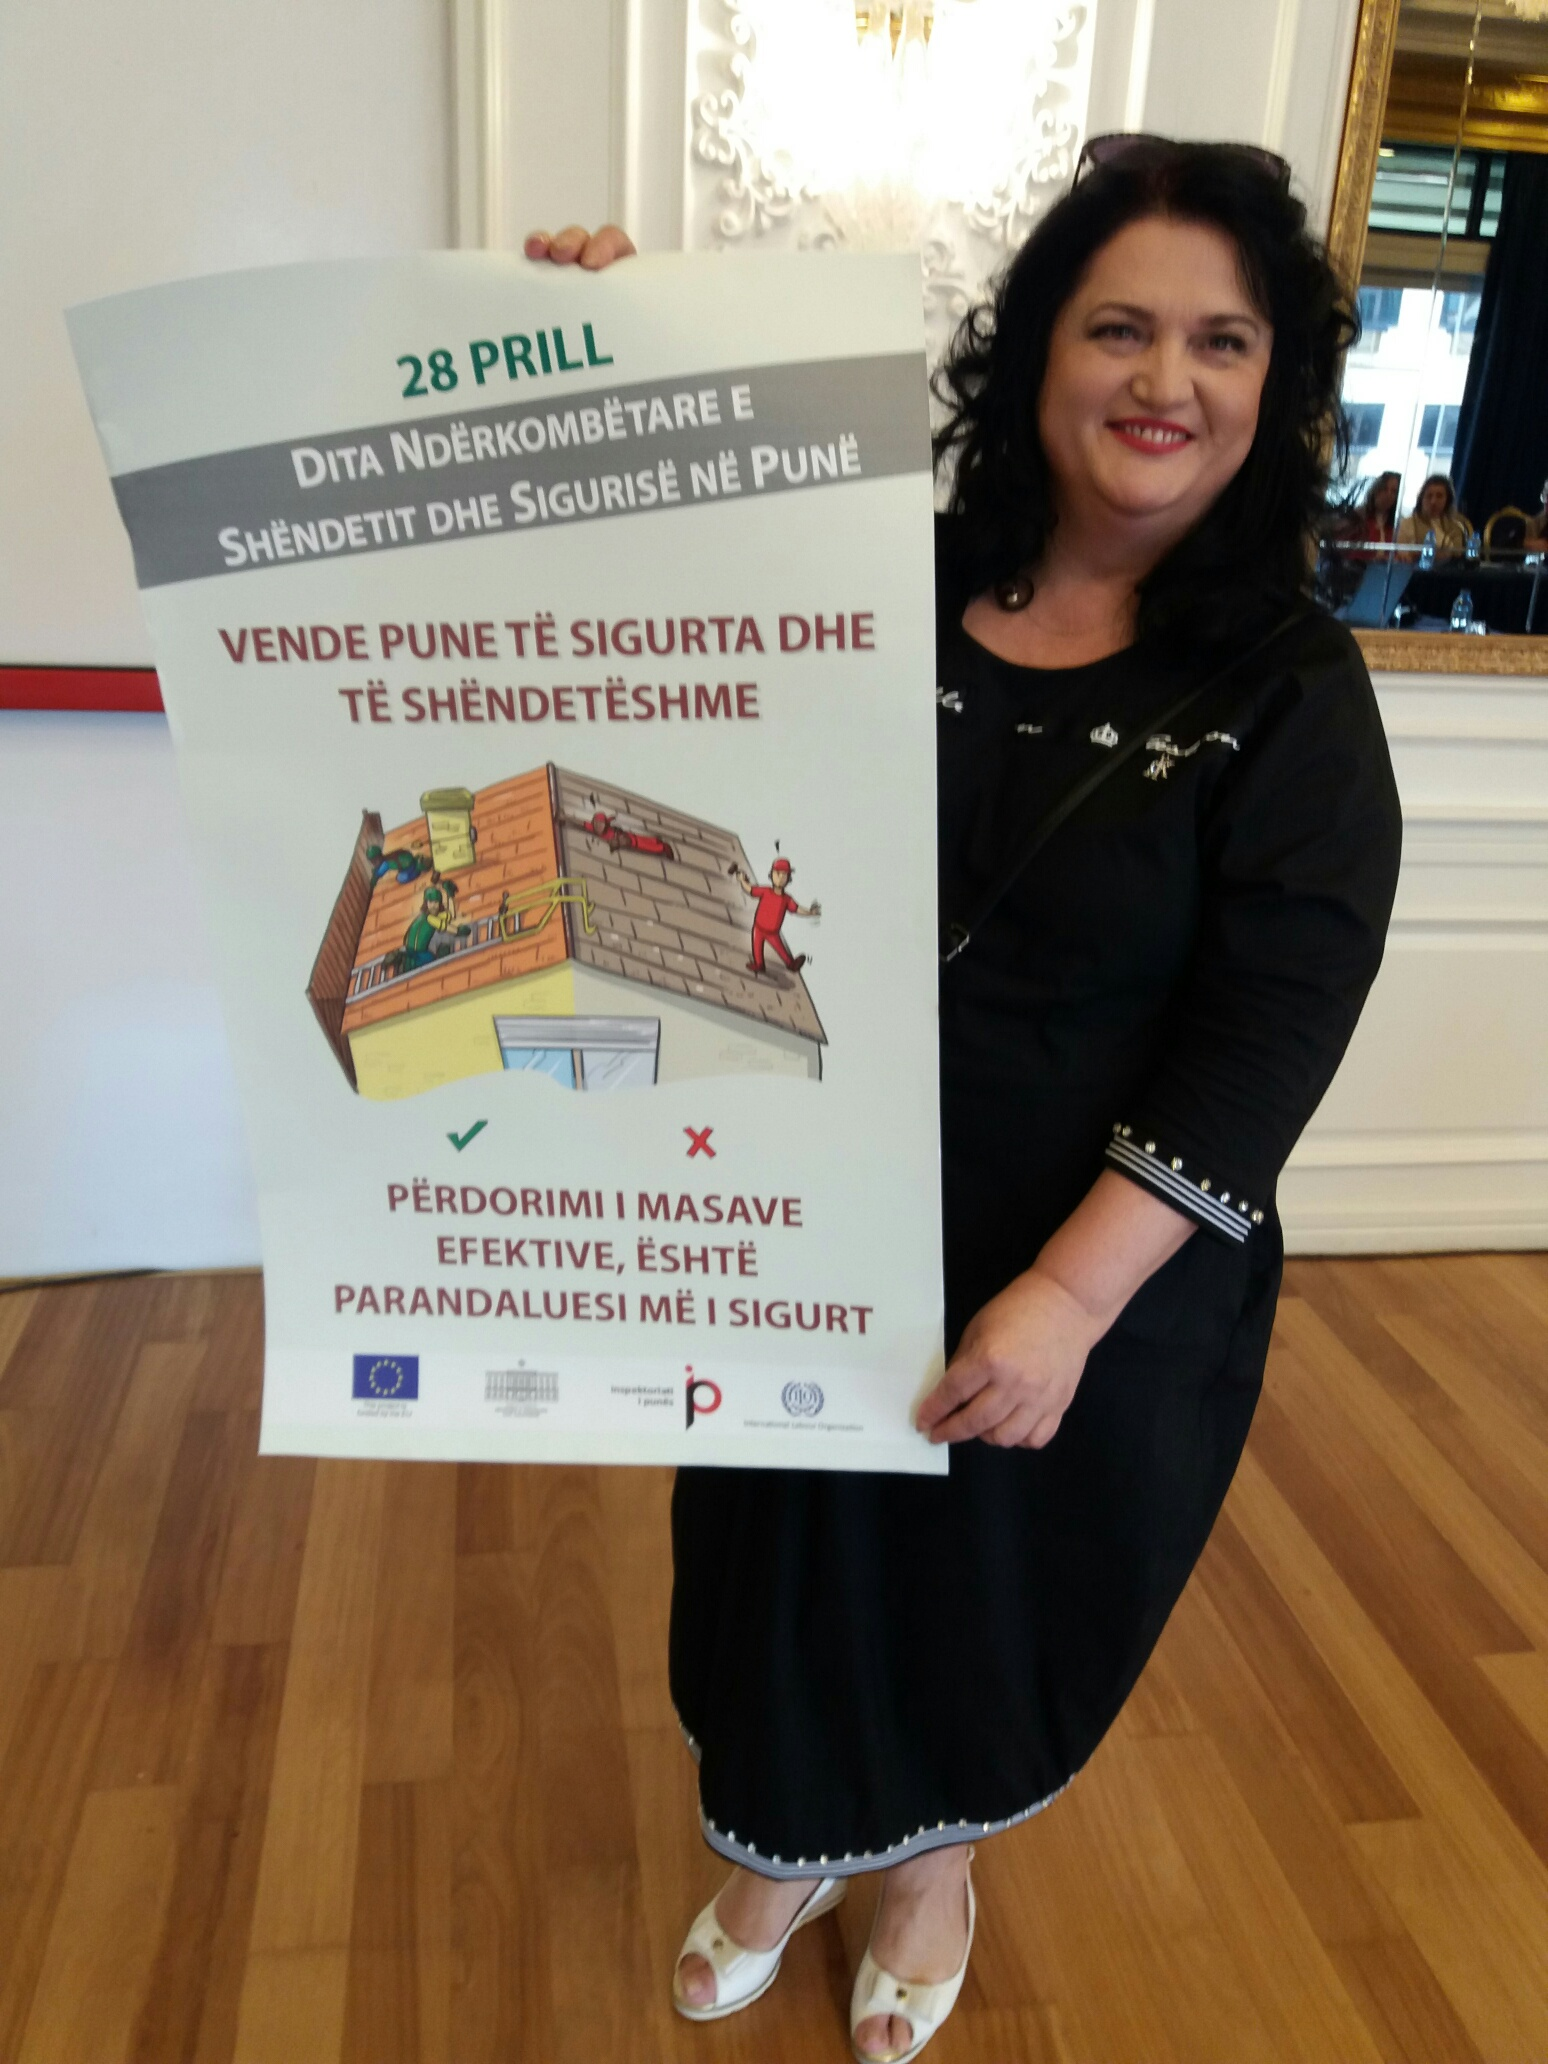 ILO National Coordinator in Albania, Zhulieta Harasani with poster for the Albanian labour inspection campaign